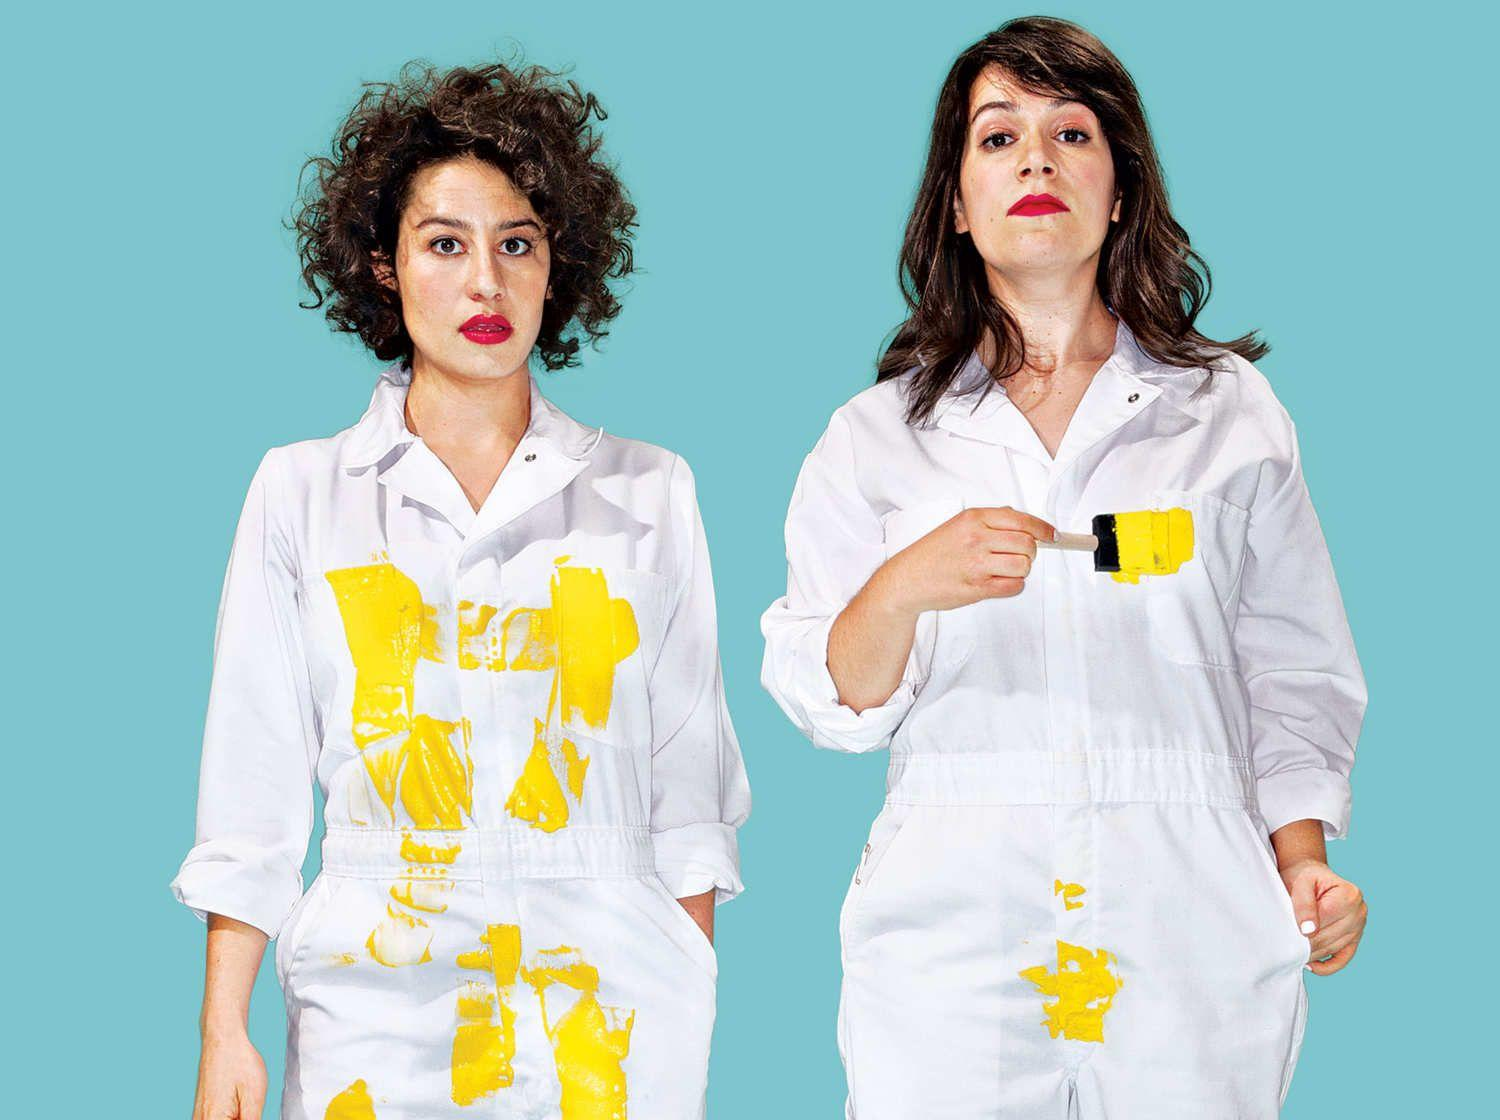 broad city wallpaper  Broad City Wallpapers - Wallpaper Cave